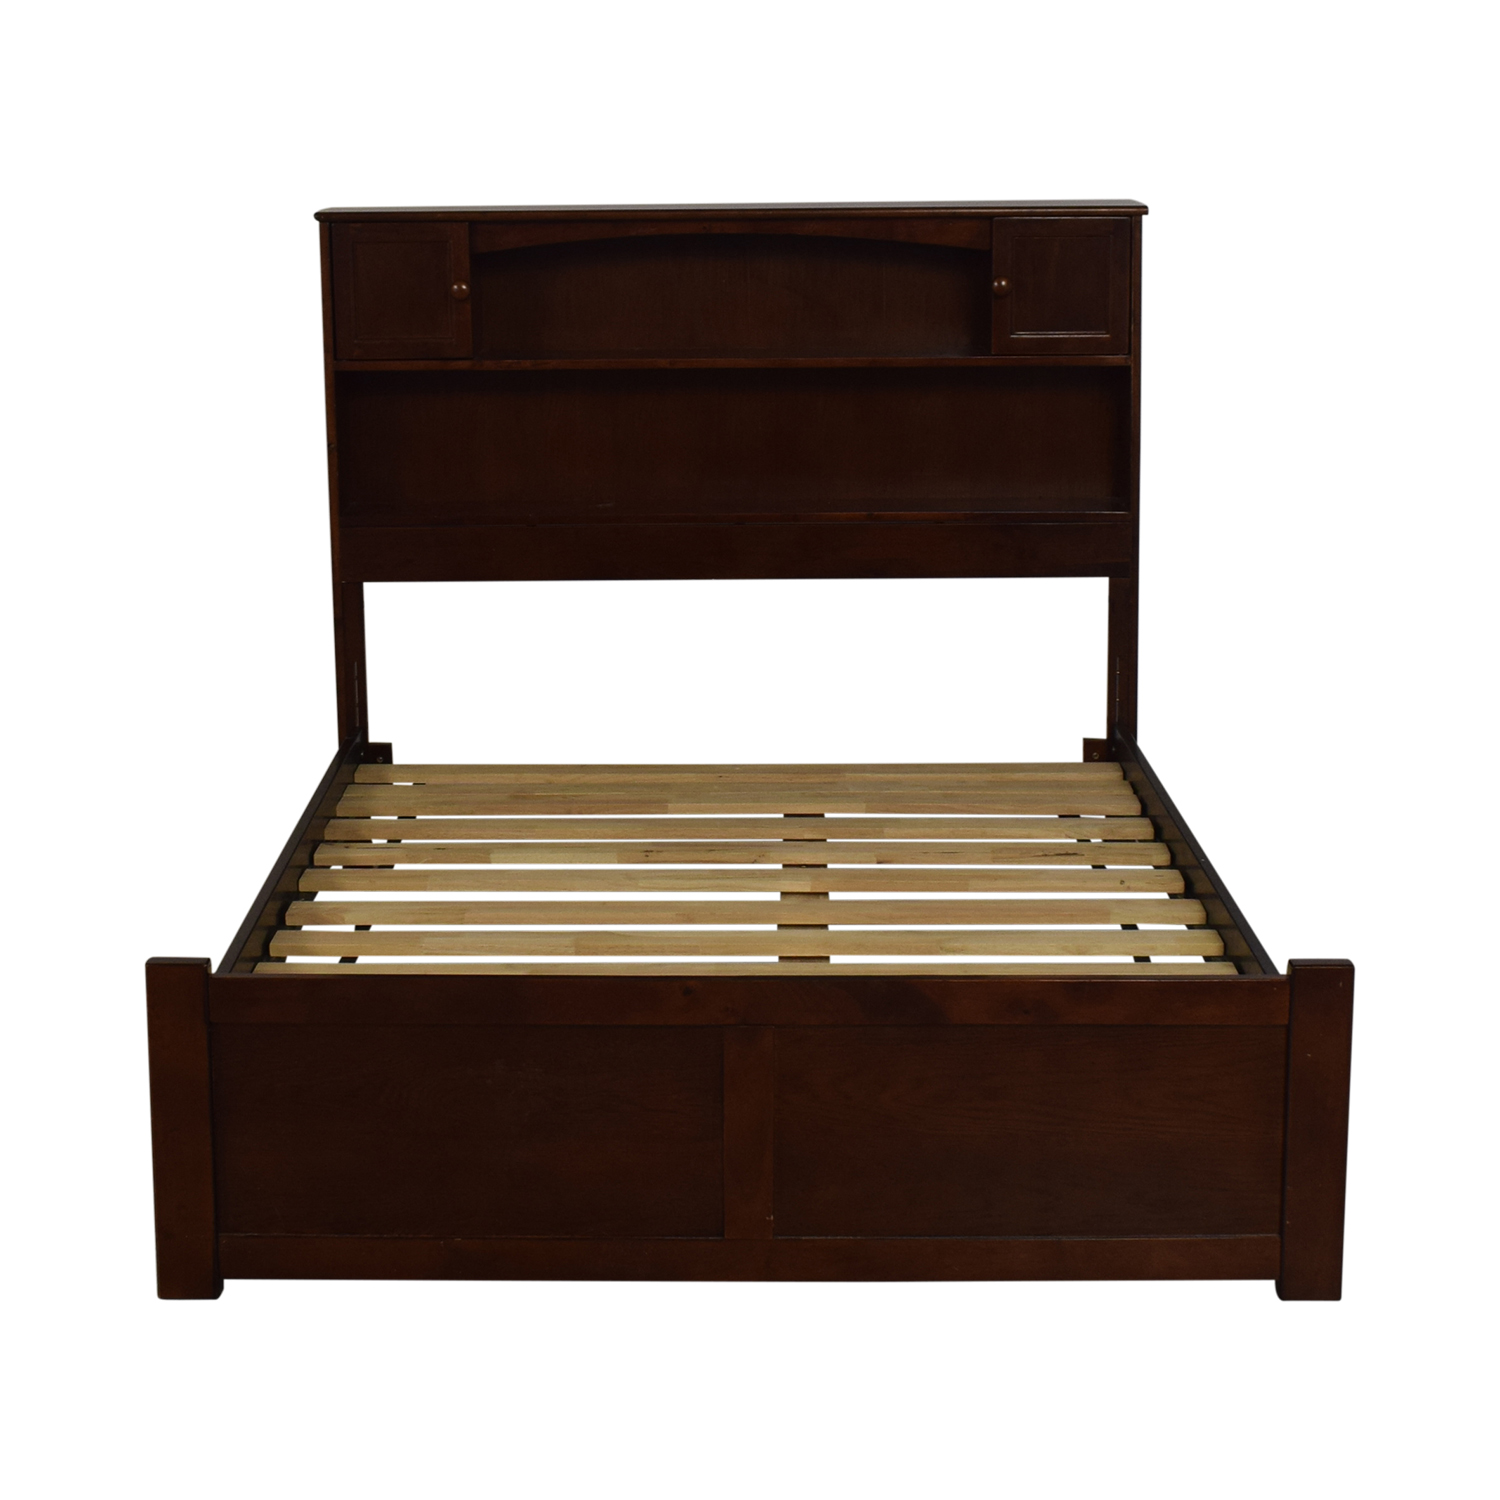 shop Viv + Rae Edwin Platform Full Bed Viv + Rae Beds